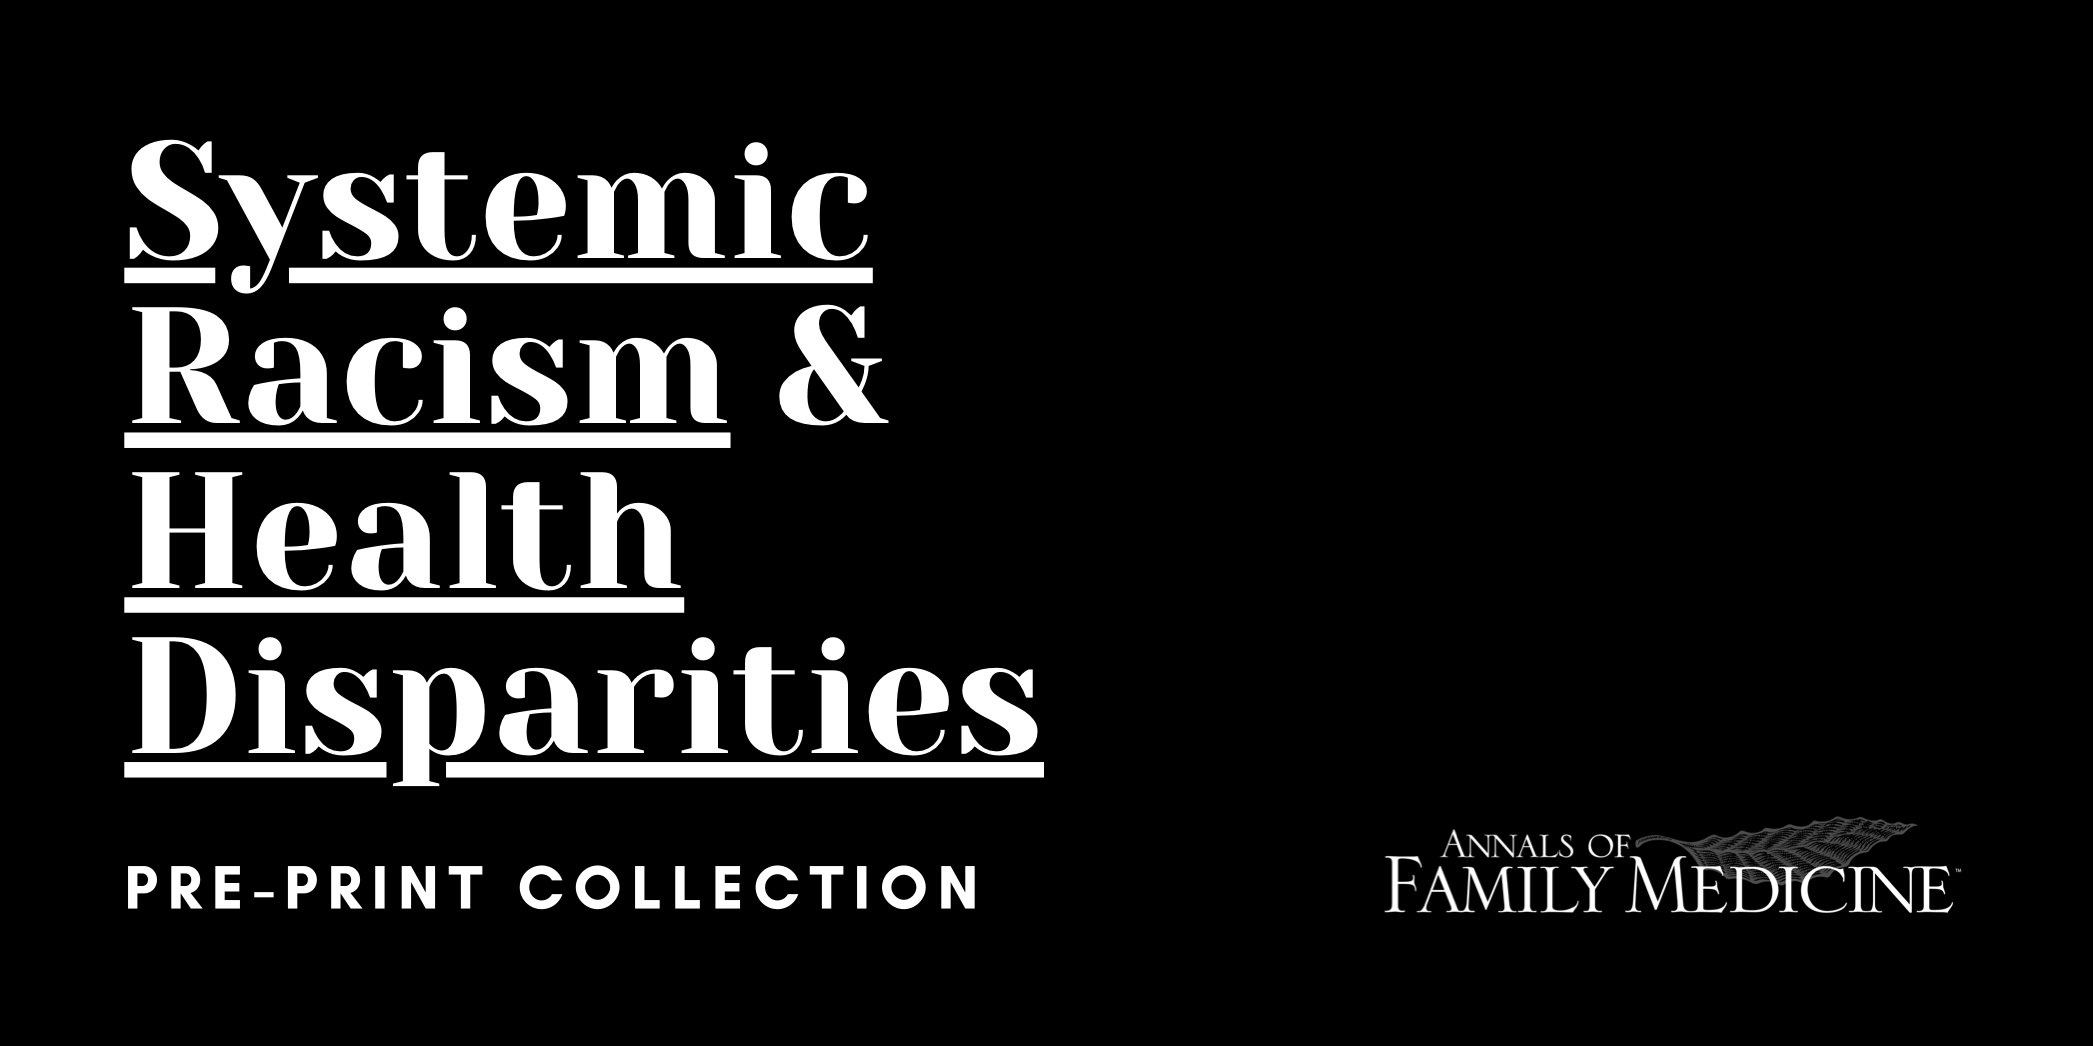 Systemic racism and health disparities annals of family medicine pre-print collection